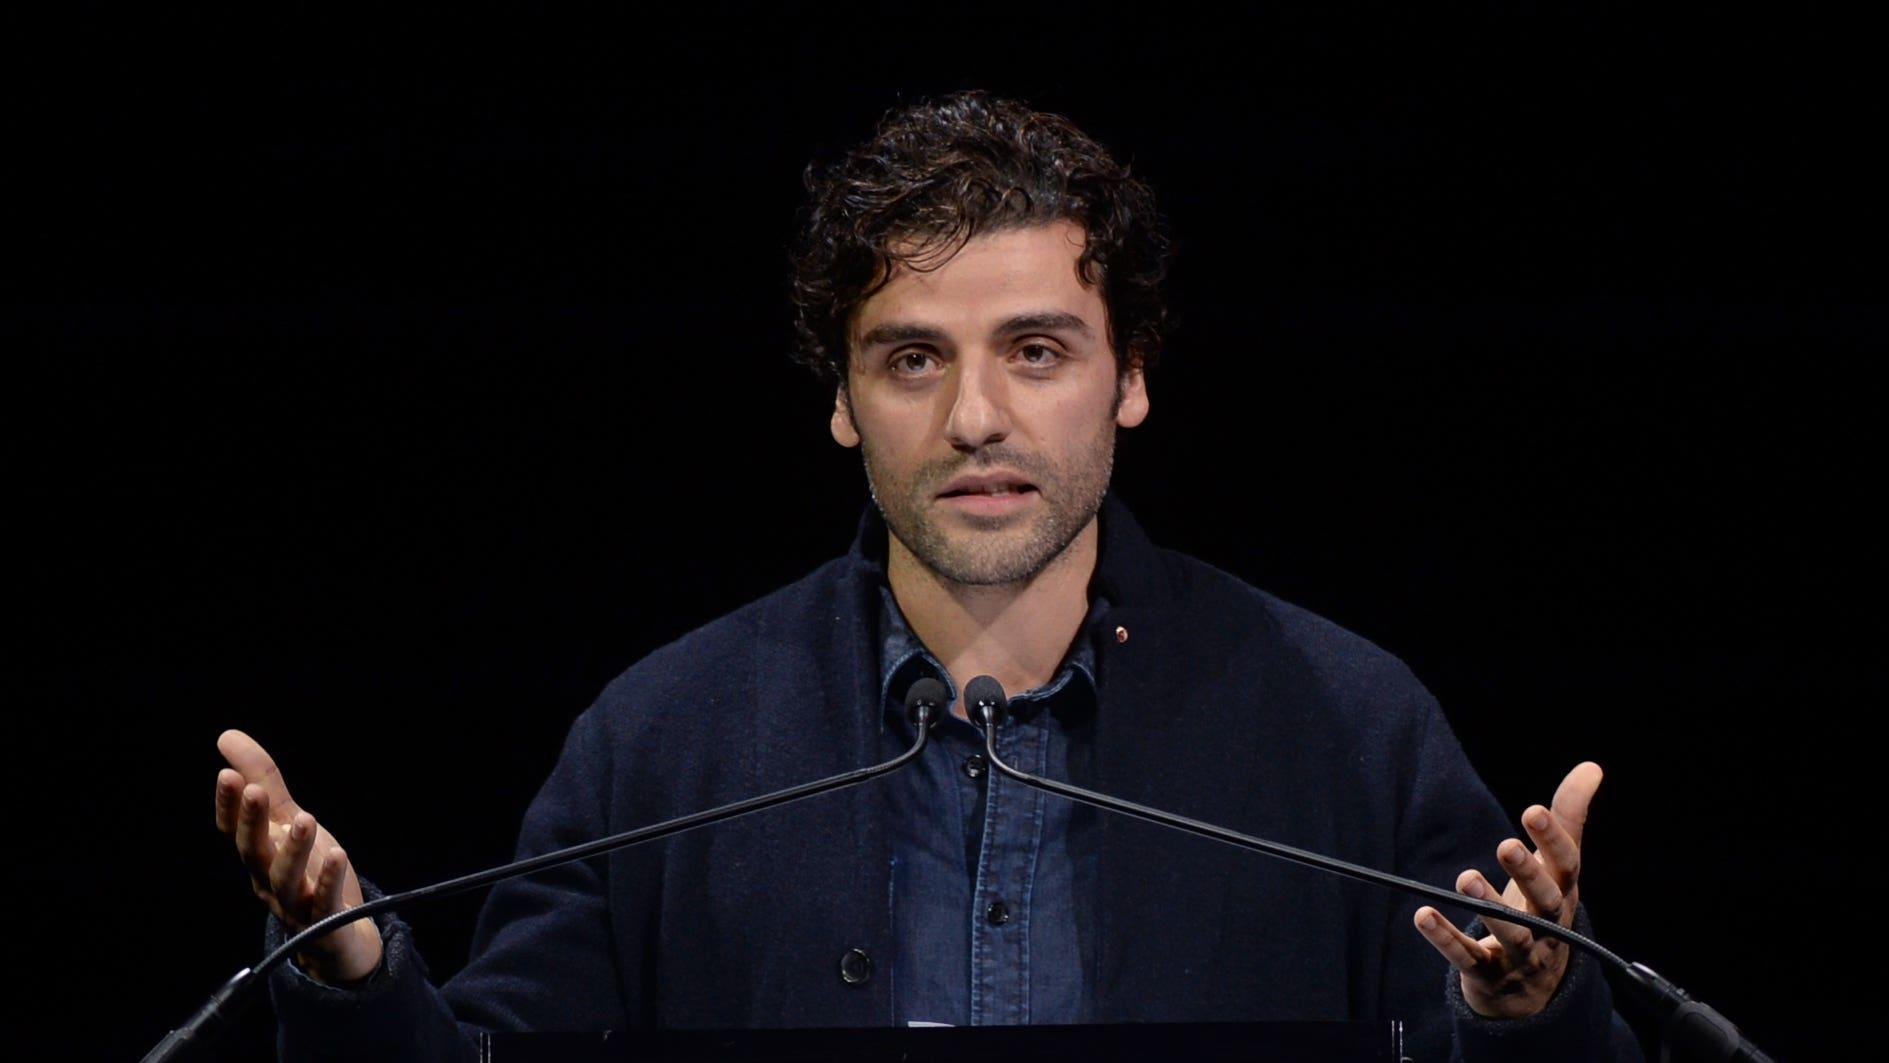 Oscar Isaac to star in Moon Knight series, actor confirms